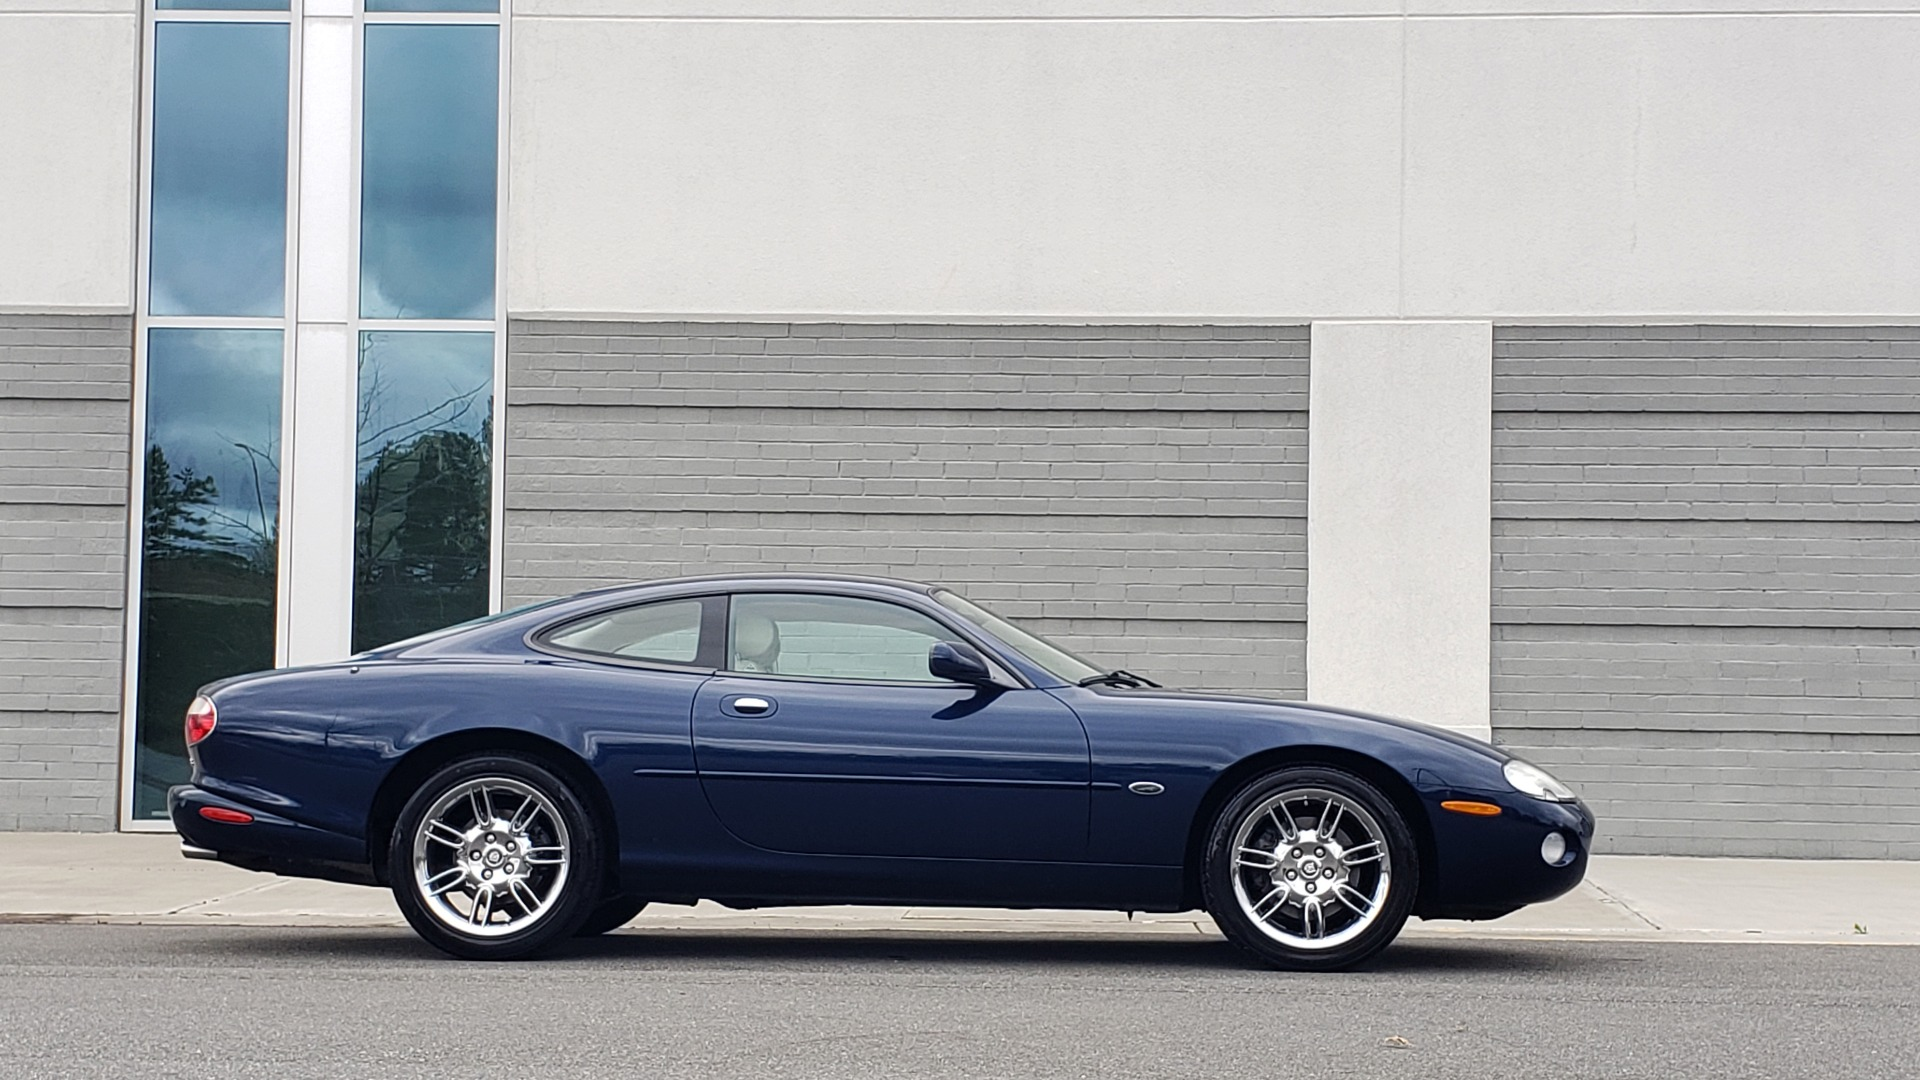 Used 2002 Jaguar XK8 COUPE / 4.0L V8 / 5-SPD AUTO / ALPINE SOUND / 18IN CHROME WHEELS for sale $16,450 at Formula Imports in Charlotte NC 28227 11